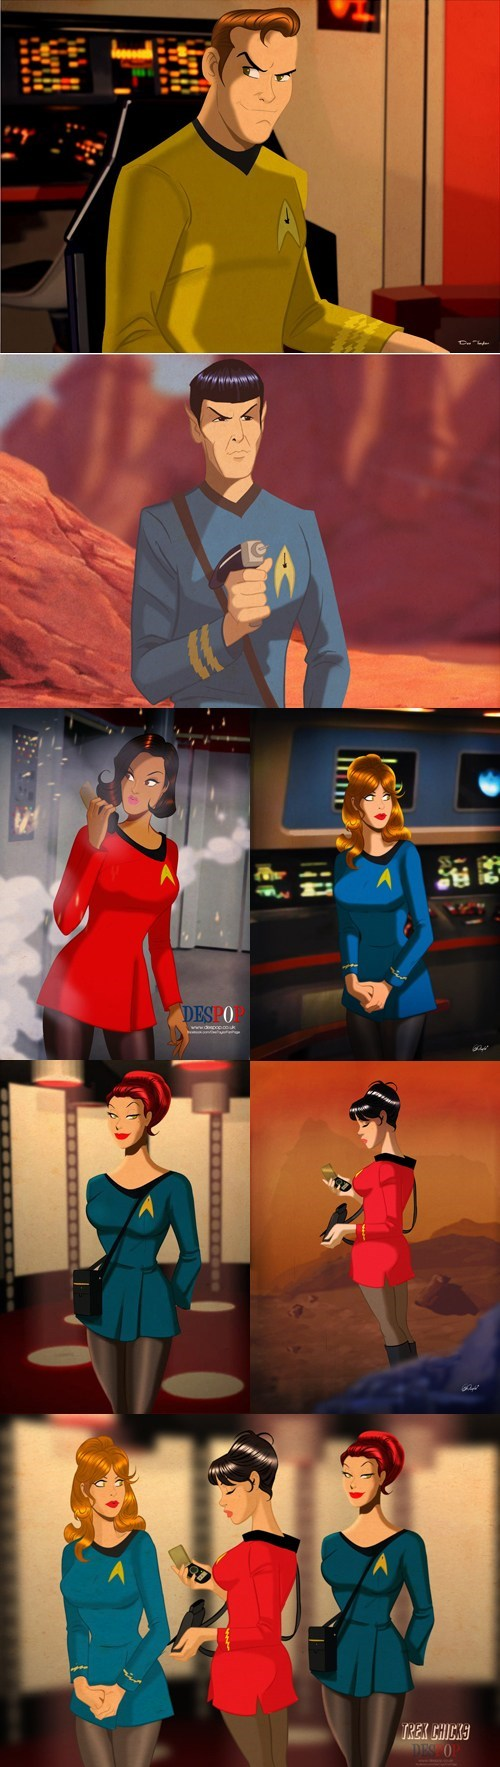 Star Trek Pin Up Art